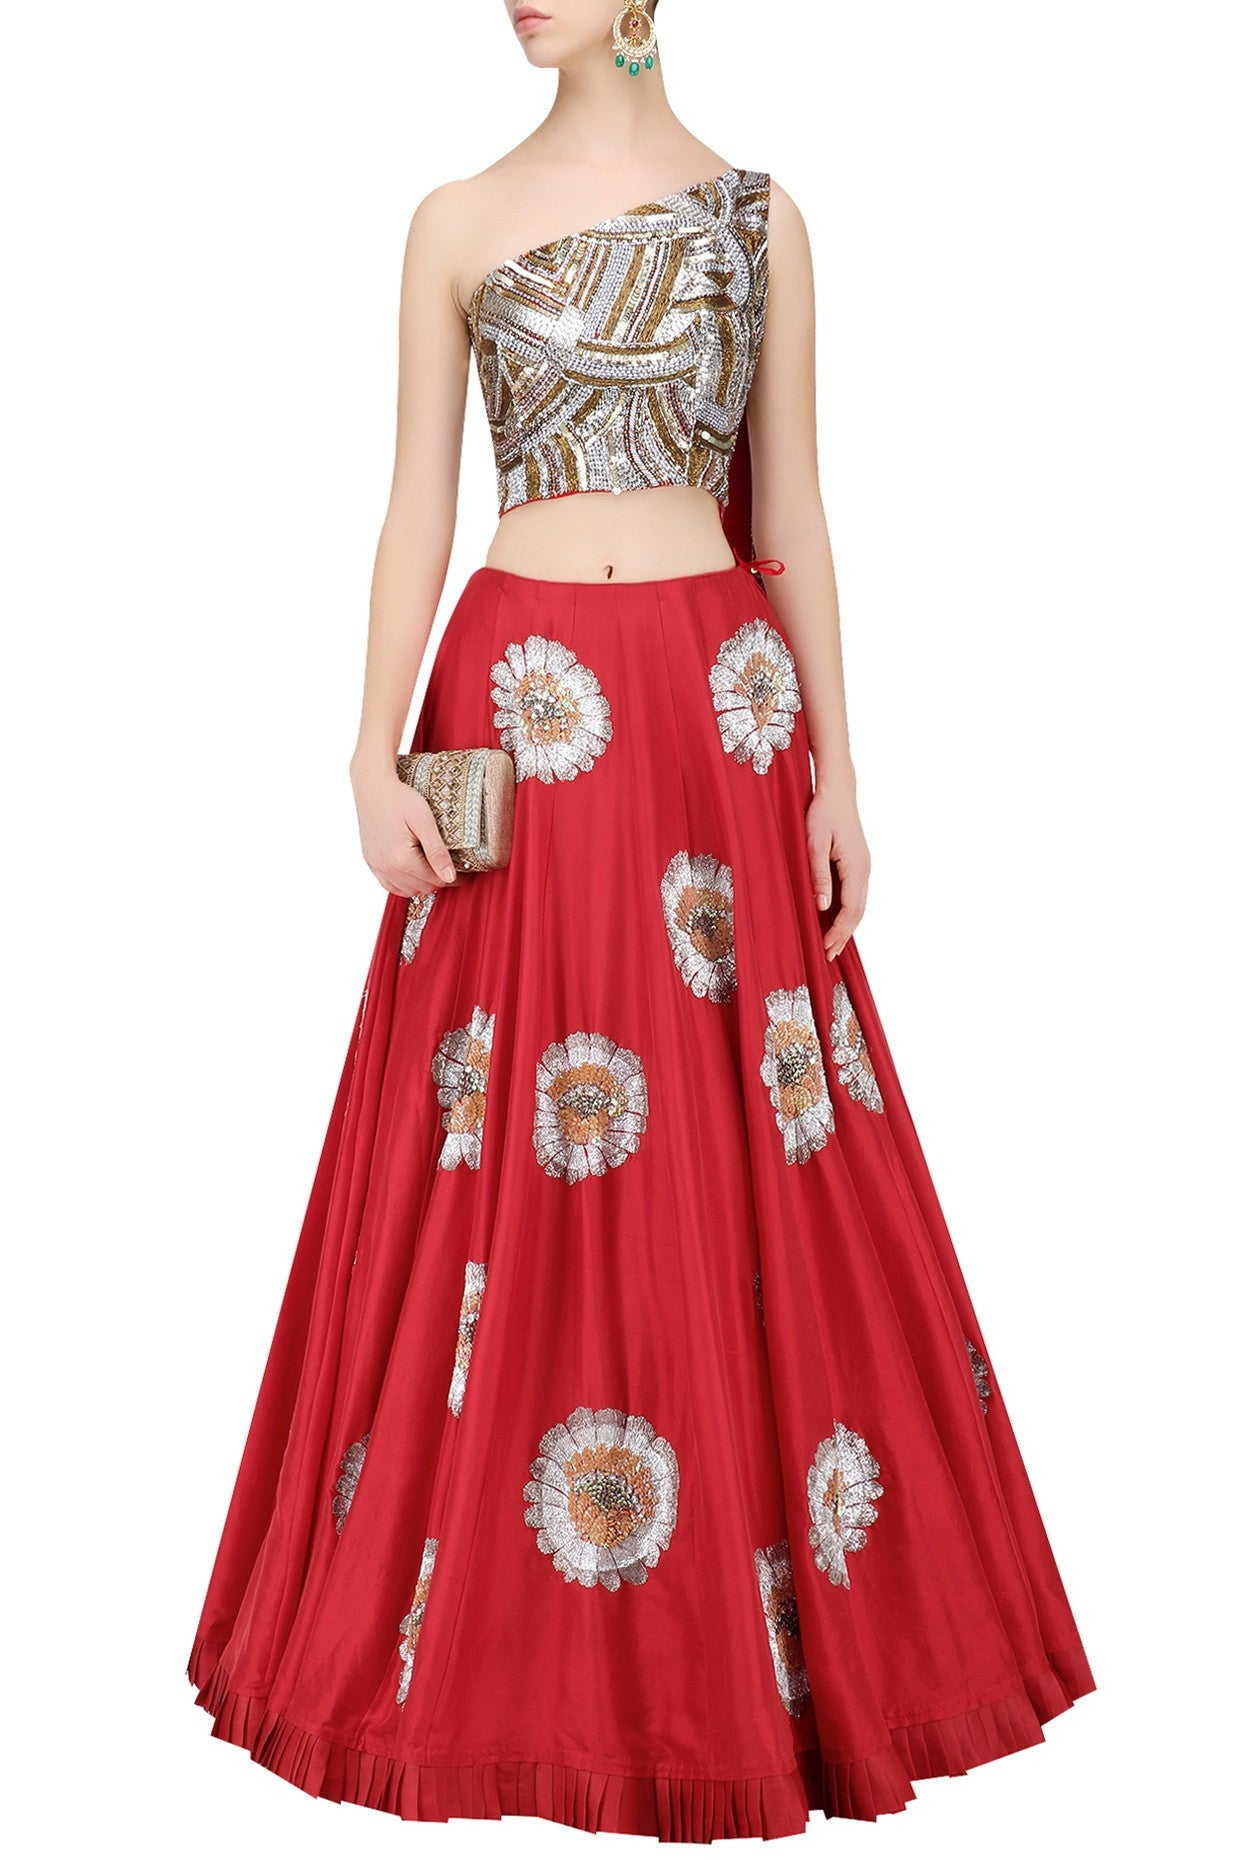 Red Color Lehenga with One Shoulder Blouse